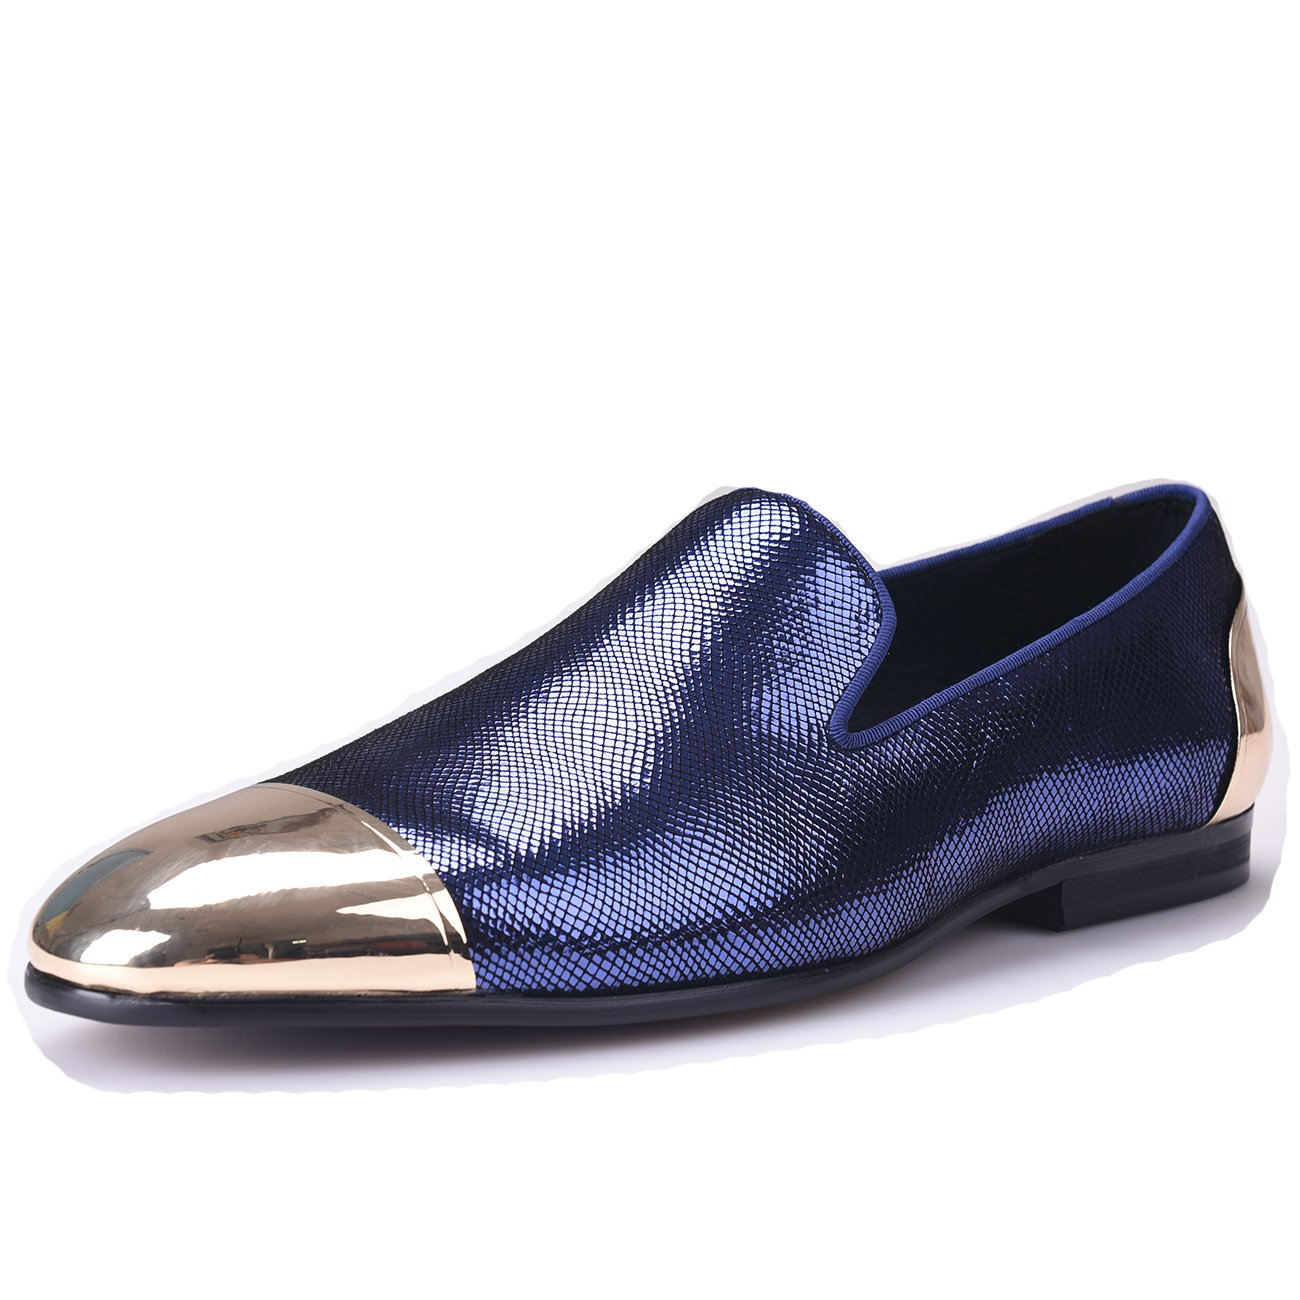 bed6995a5a751 HI&HANN Sheepskin with Front and Back Metal Men's Loafer Shoes Slip-on  Loafer Round Toes Smoking Slipper